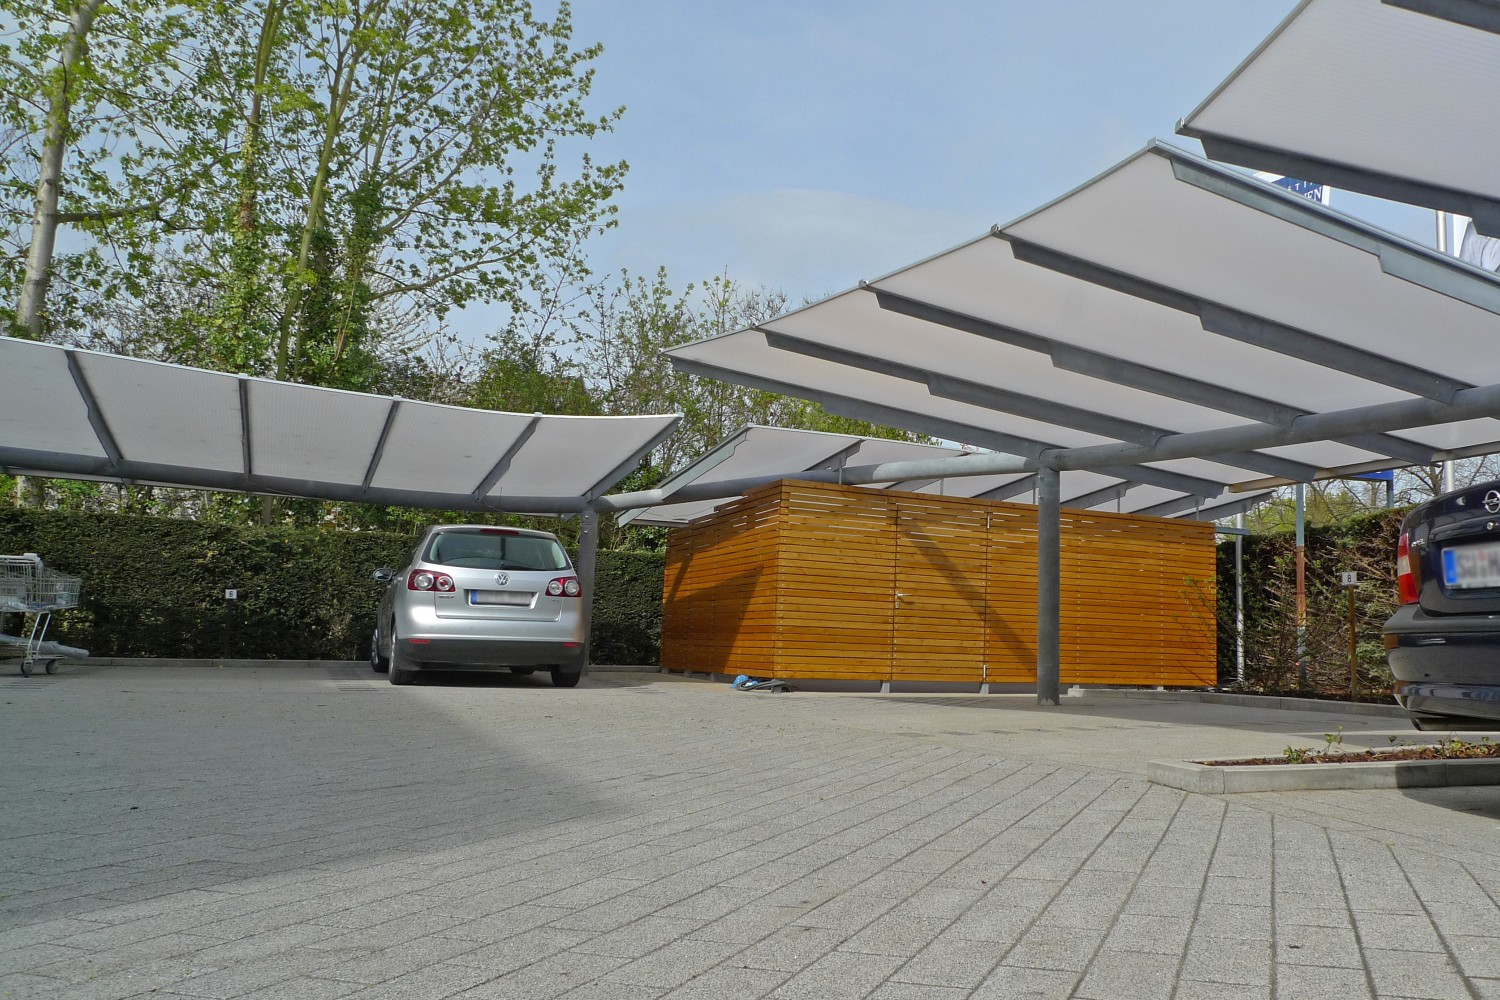 Carports senioren wohnstift innenarchitekt andreas for Innenarchitekt augsburg